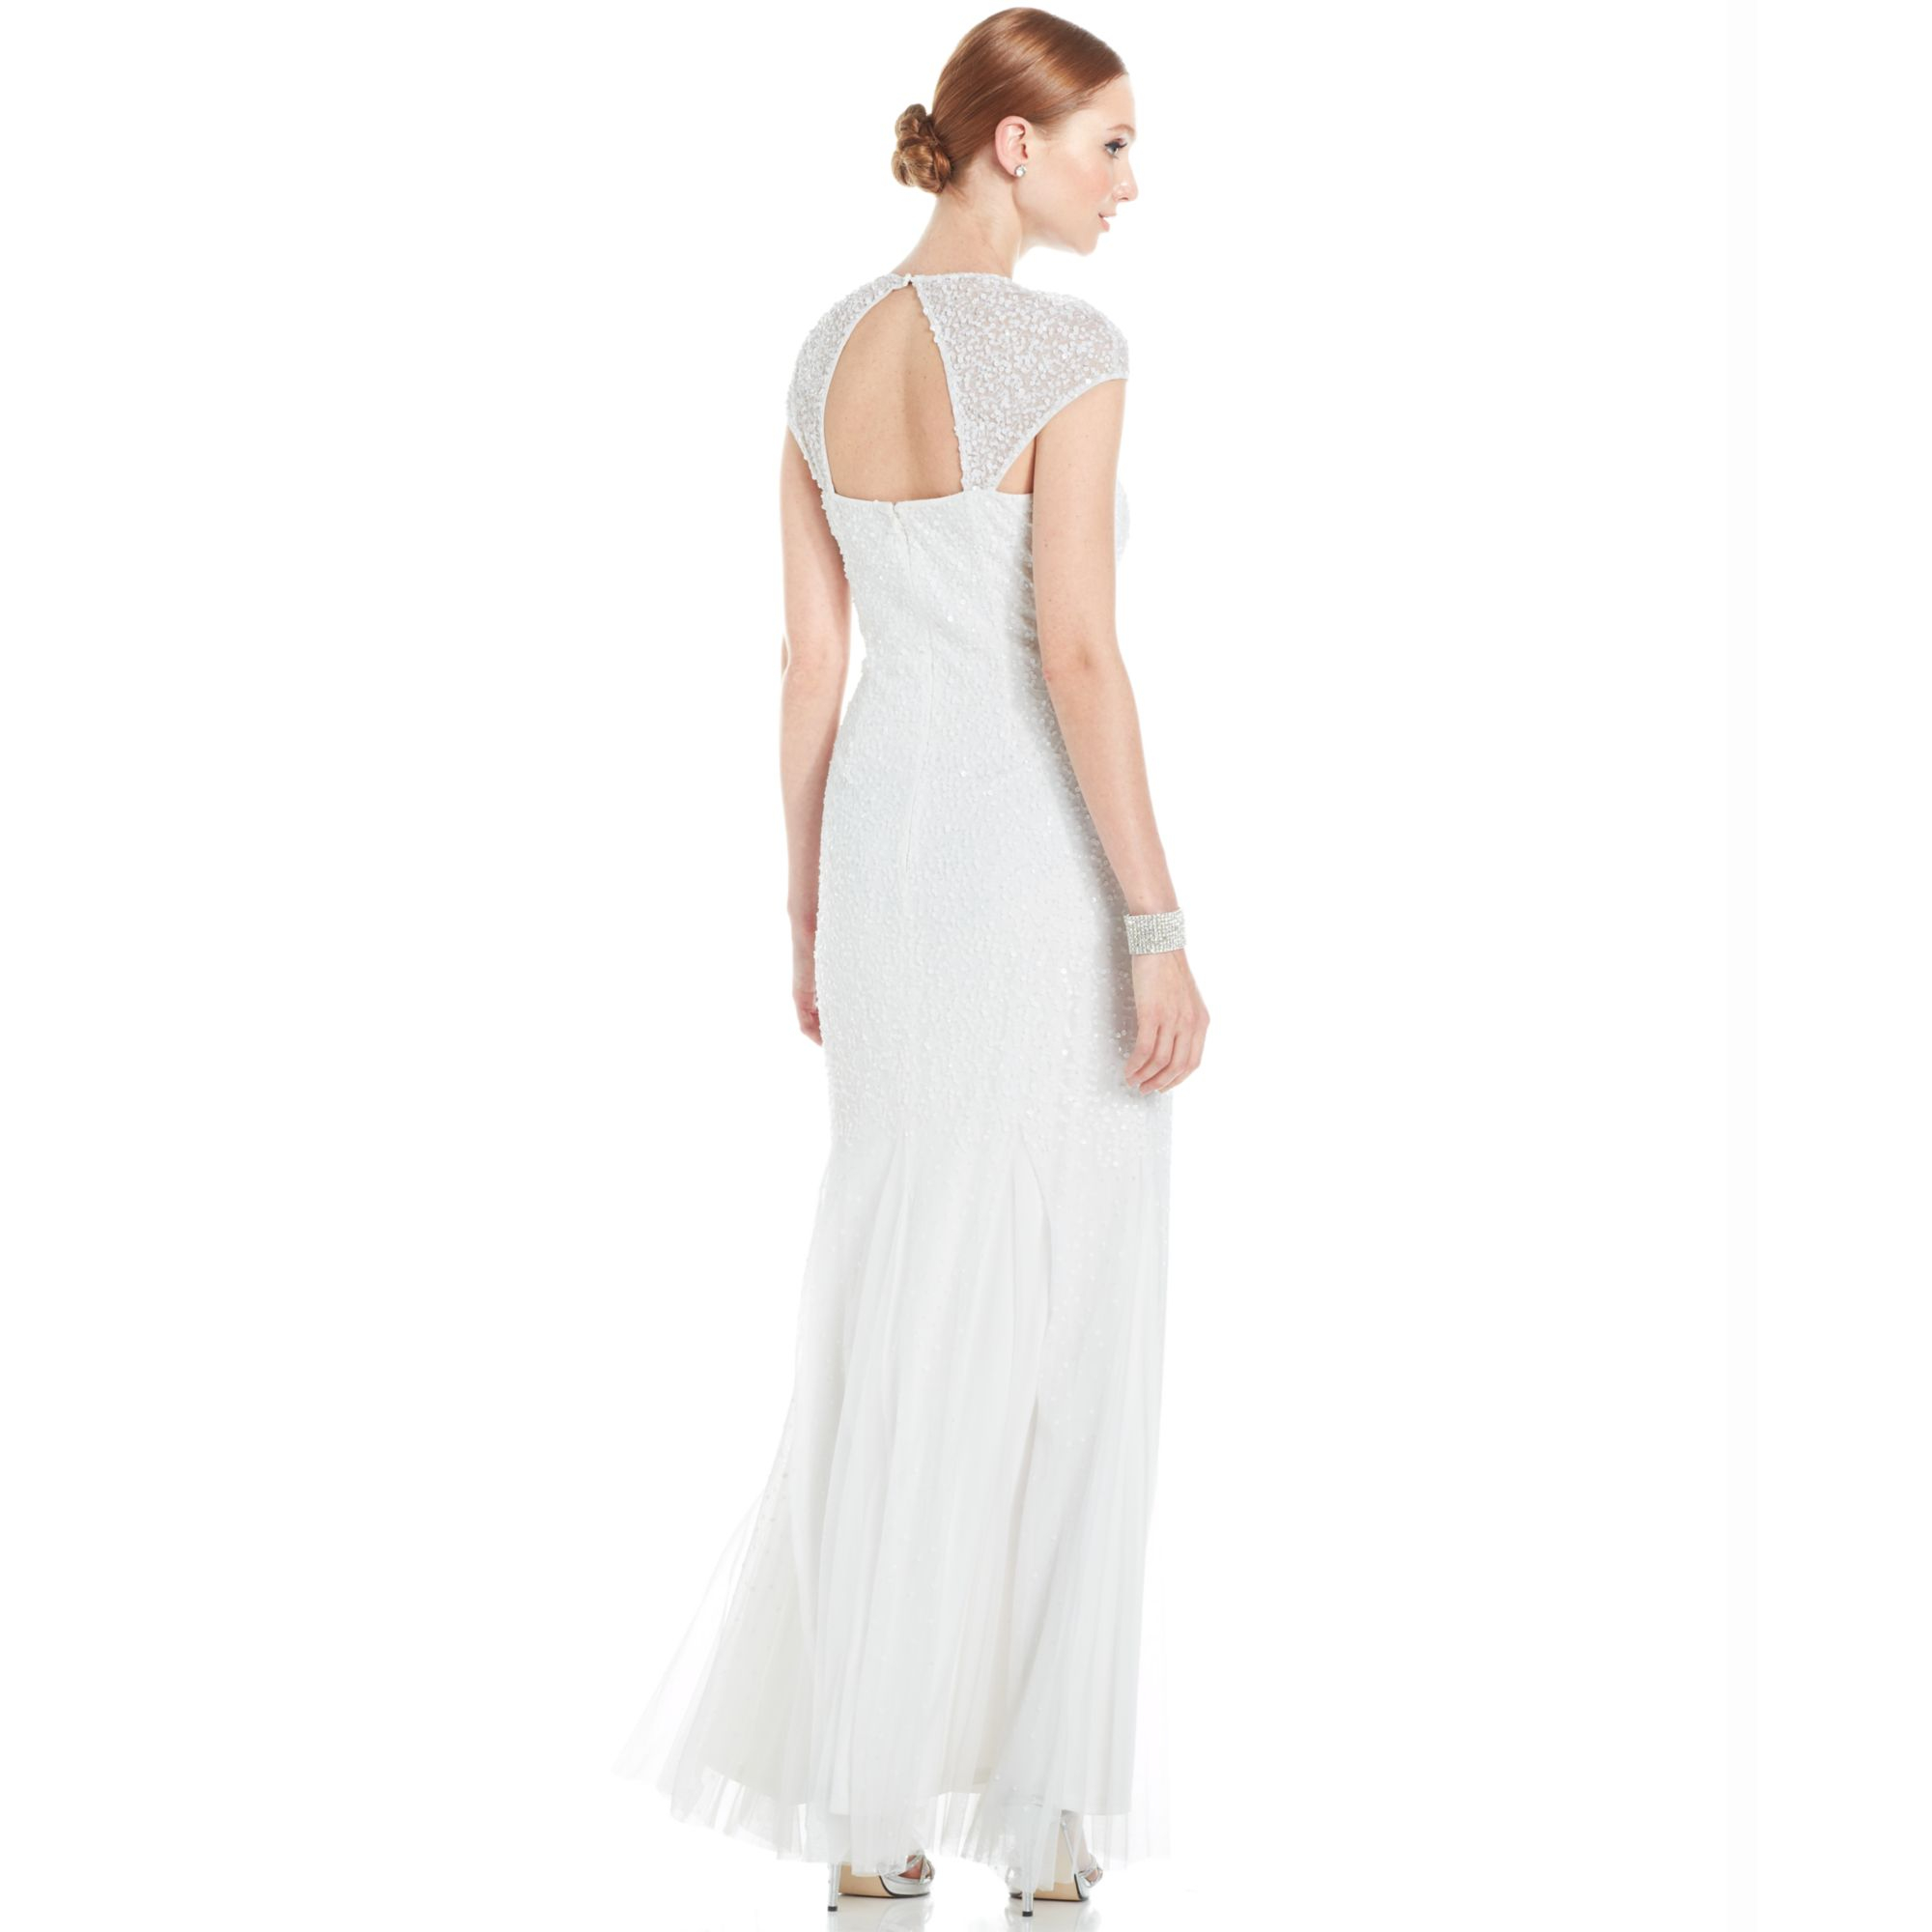 Lyst - Adrianna Papell Capsleeve Embellished Illusion Gown in White